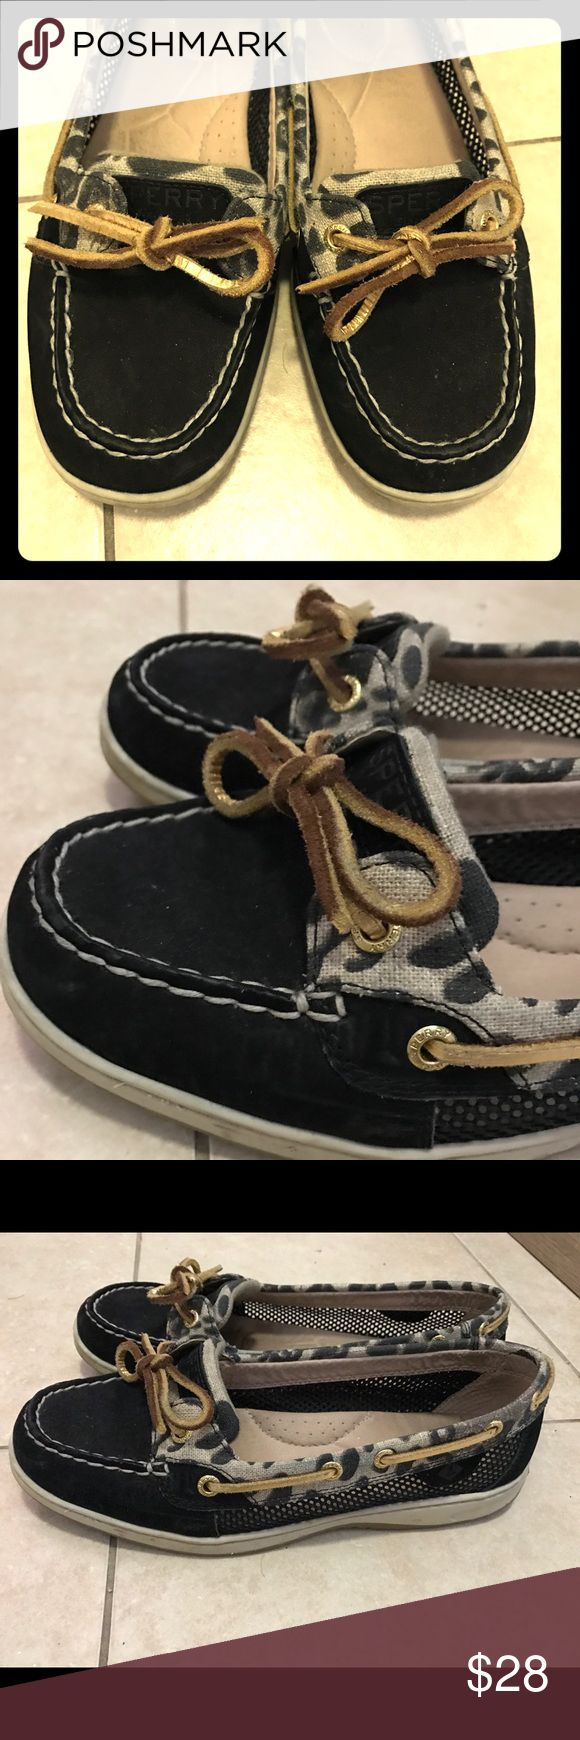 Sperry Top-Sider Women's Angelfish Boat Shoe Sperry Top-Sider, Women's Angelfish Boat Shoe. Size 8 1/5 in great condition. No scuffs, tears etc. Sperry Top-Sider Shoes Flats & Loafers